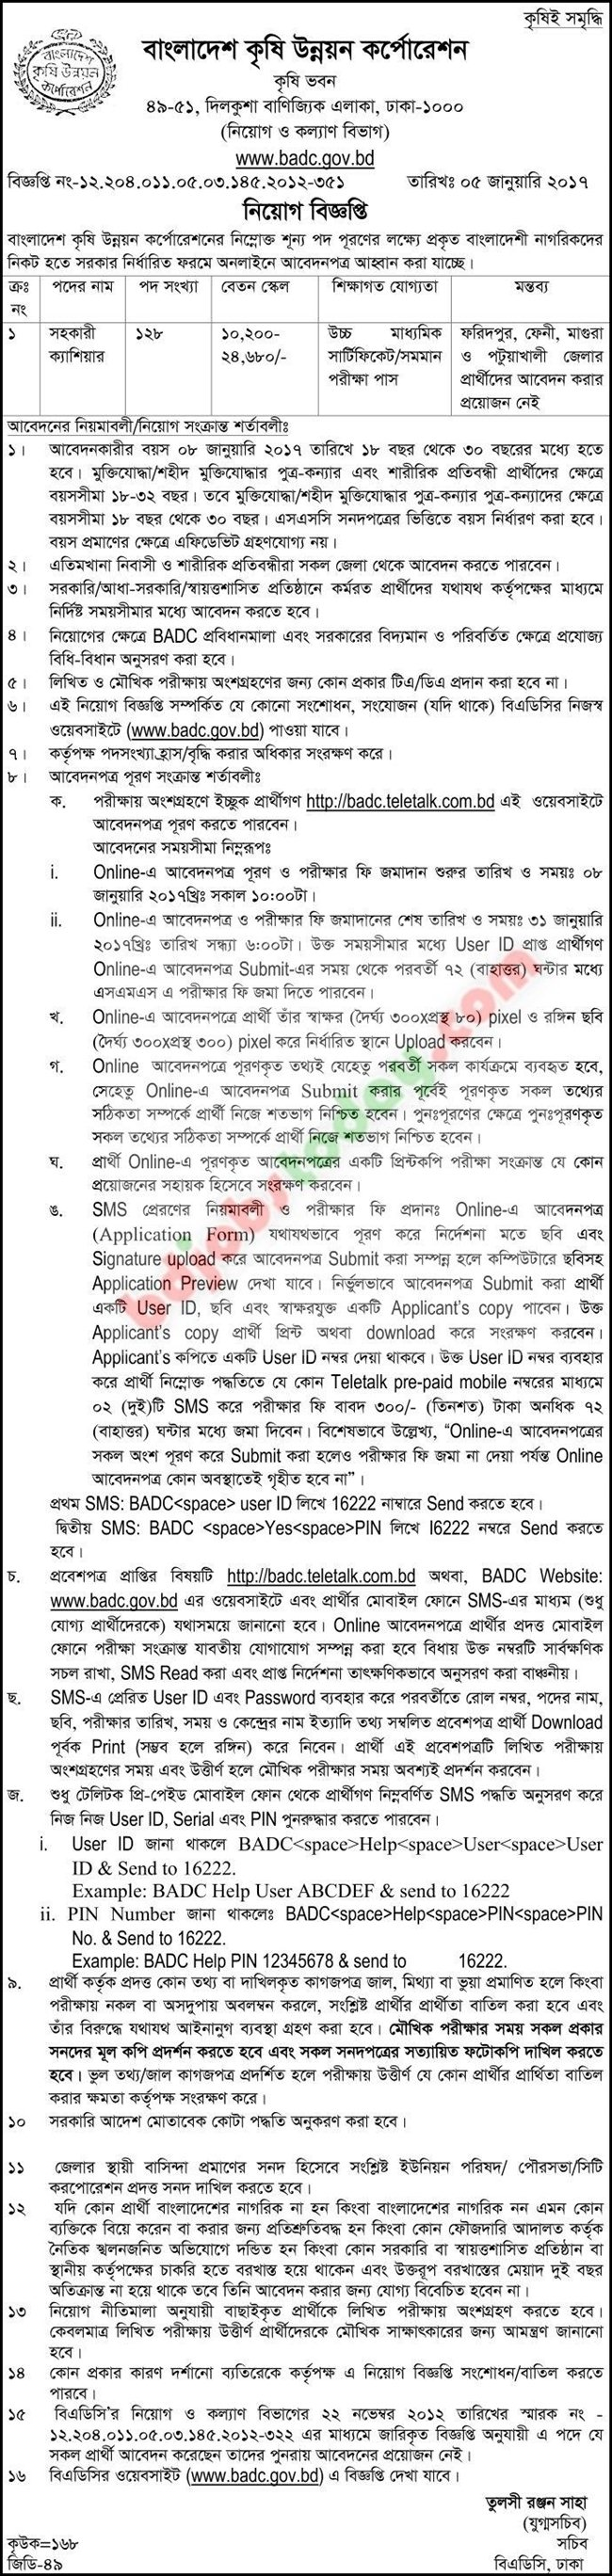 Bangladesh Agricultural Development Corporation -BADC jobs